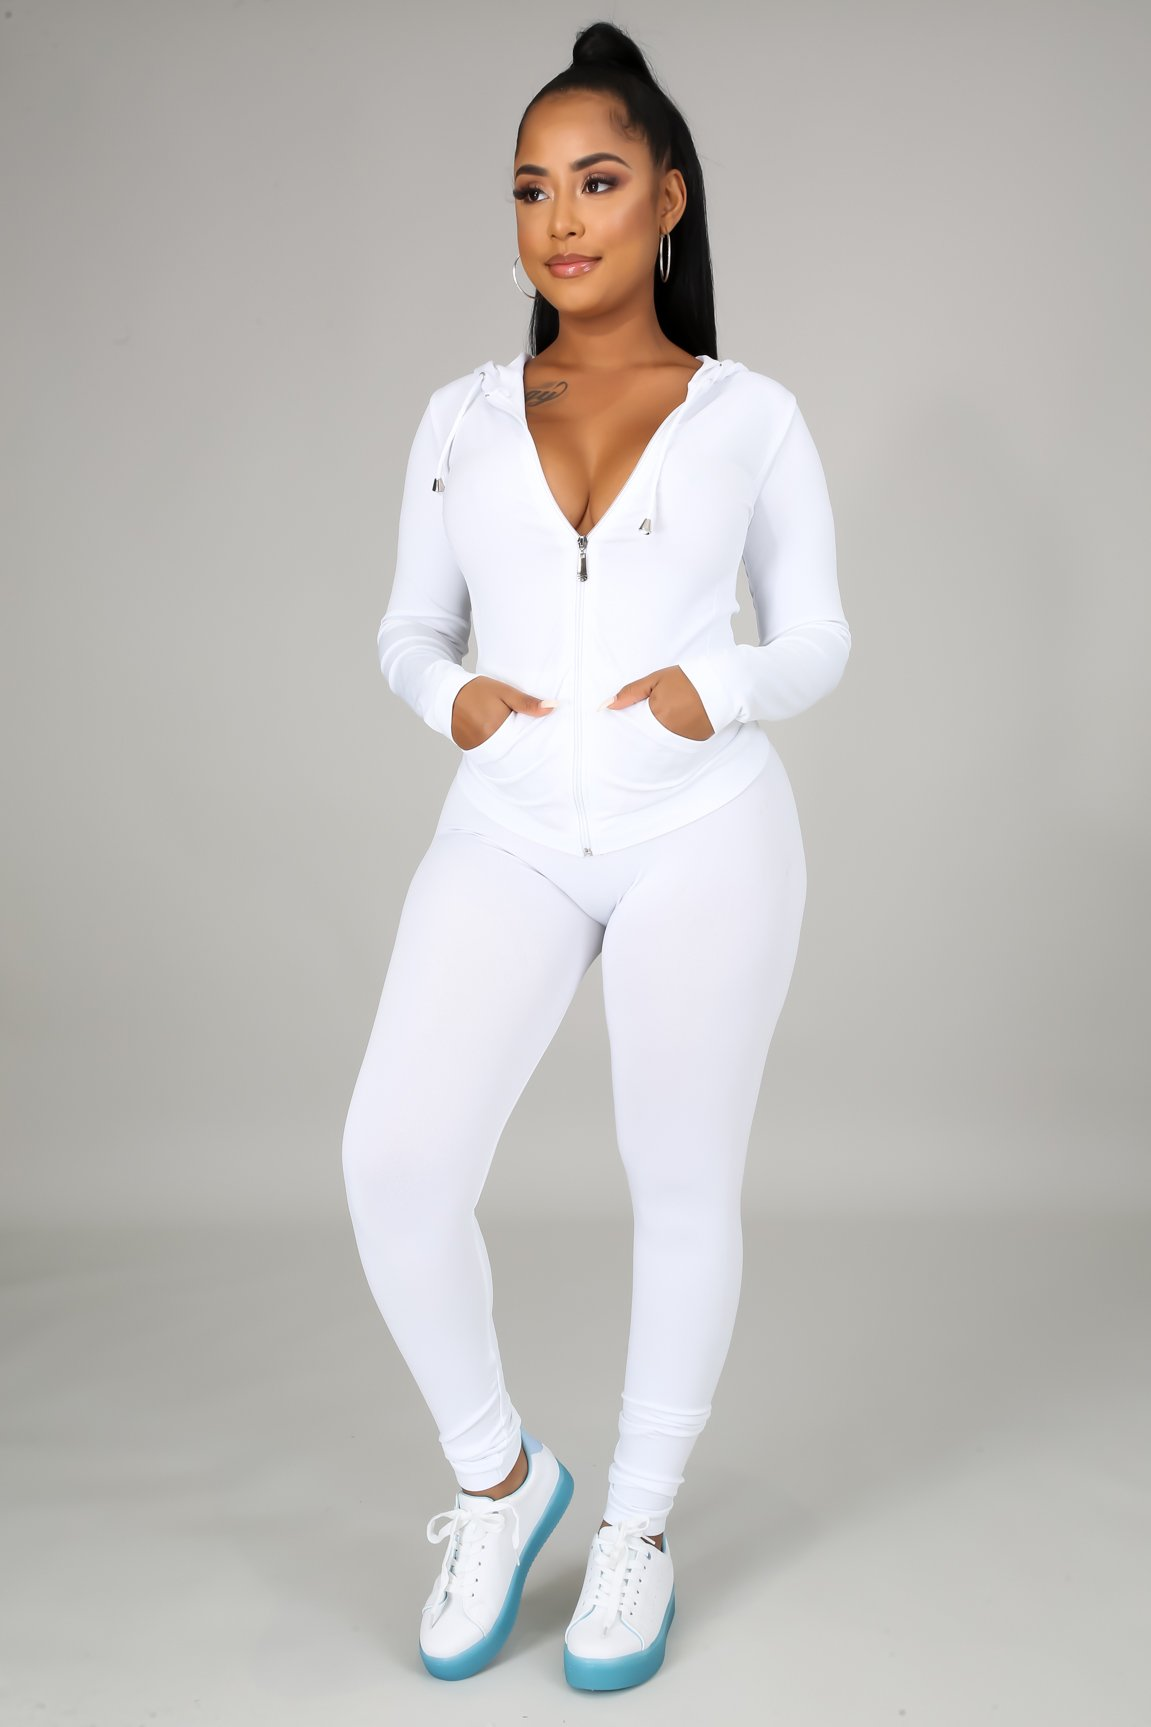 You Can Do It Legging Set - White